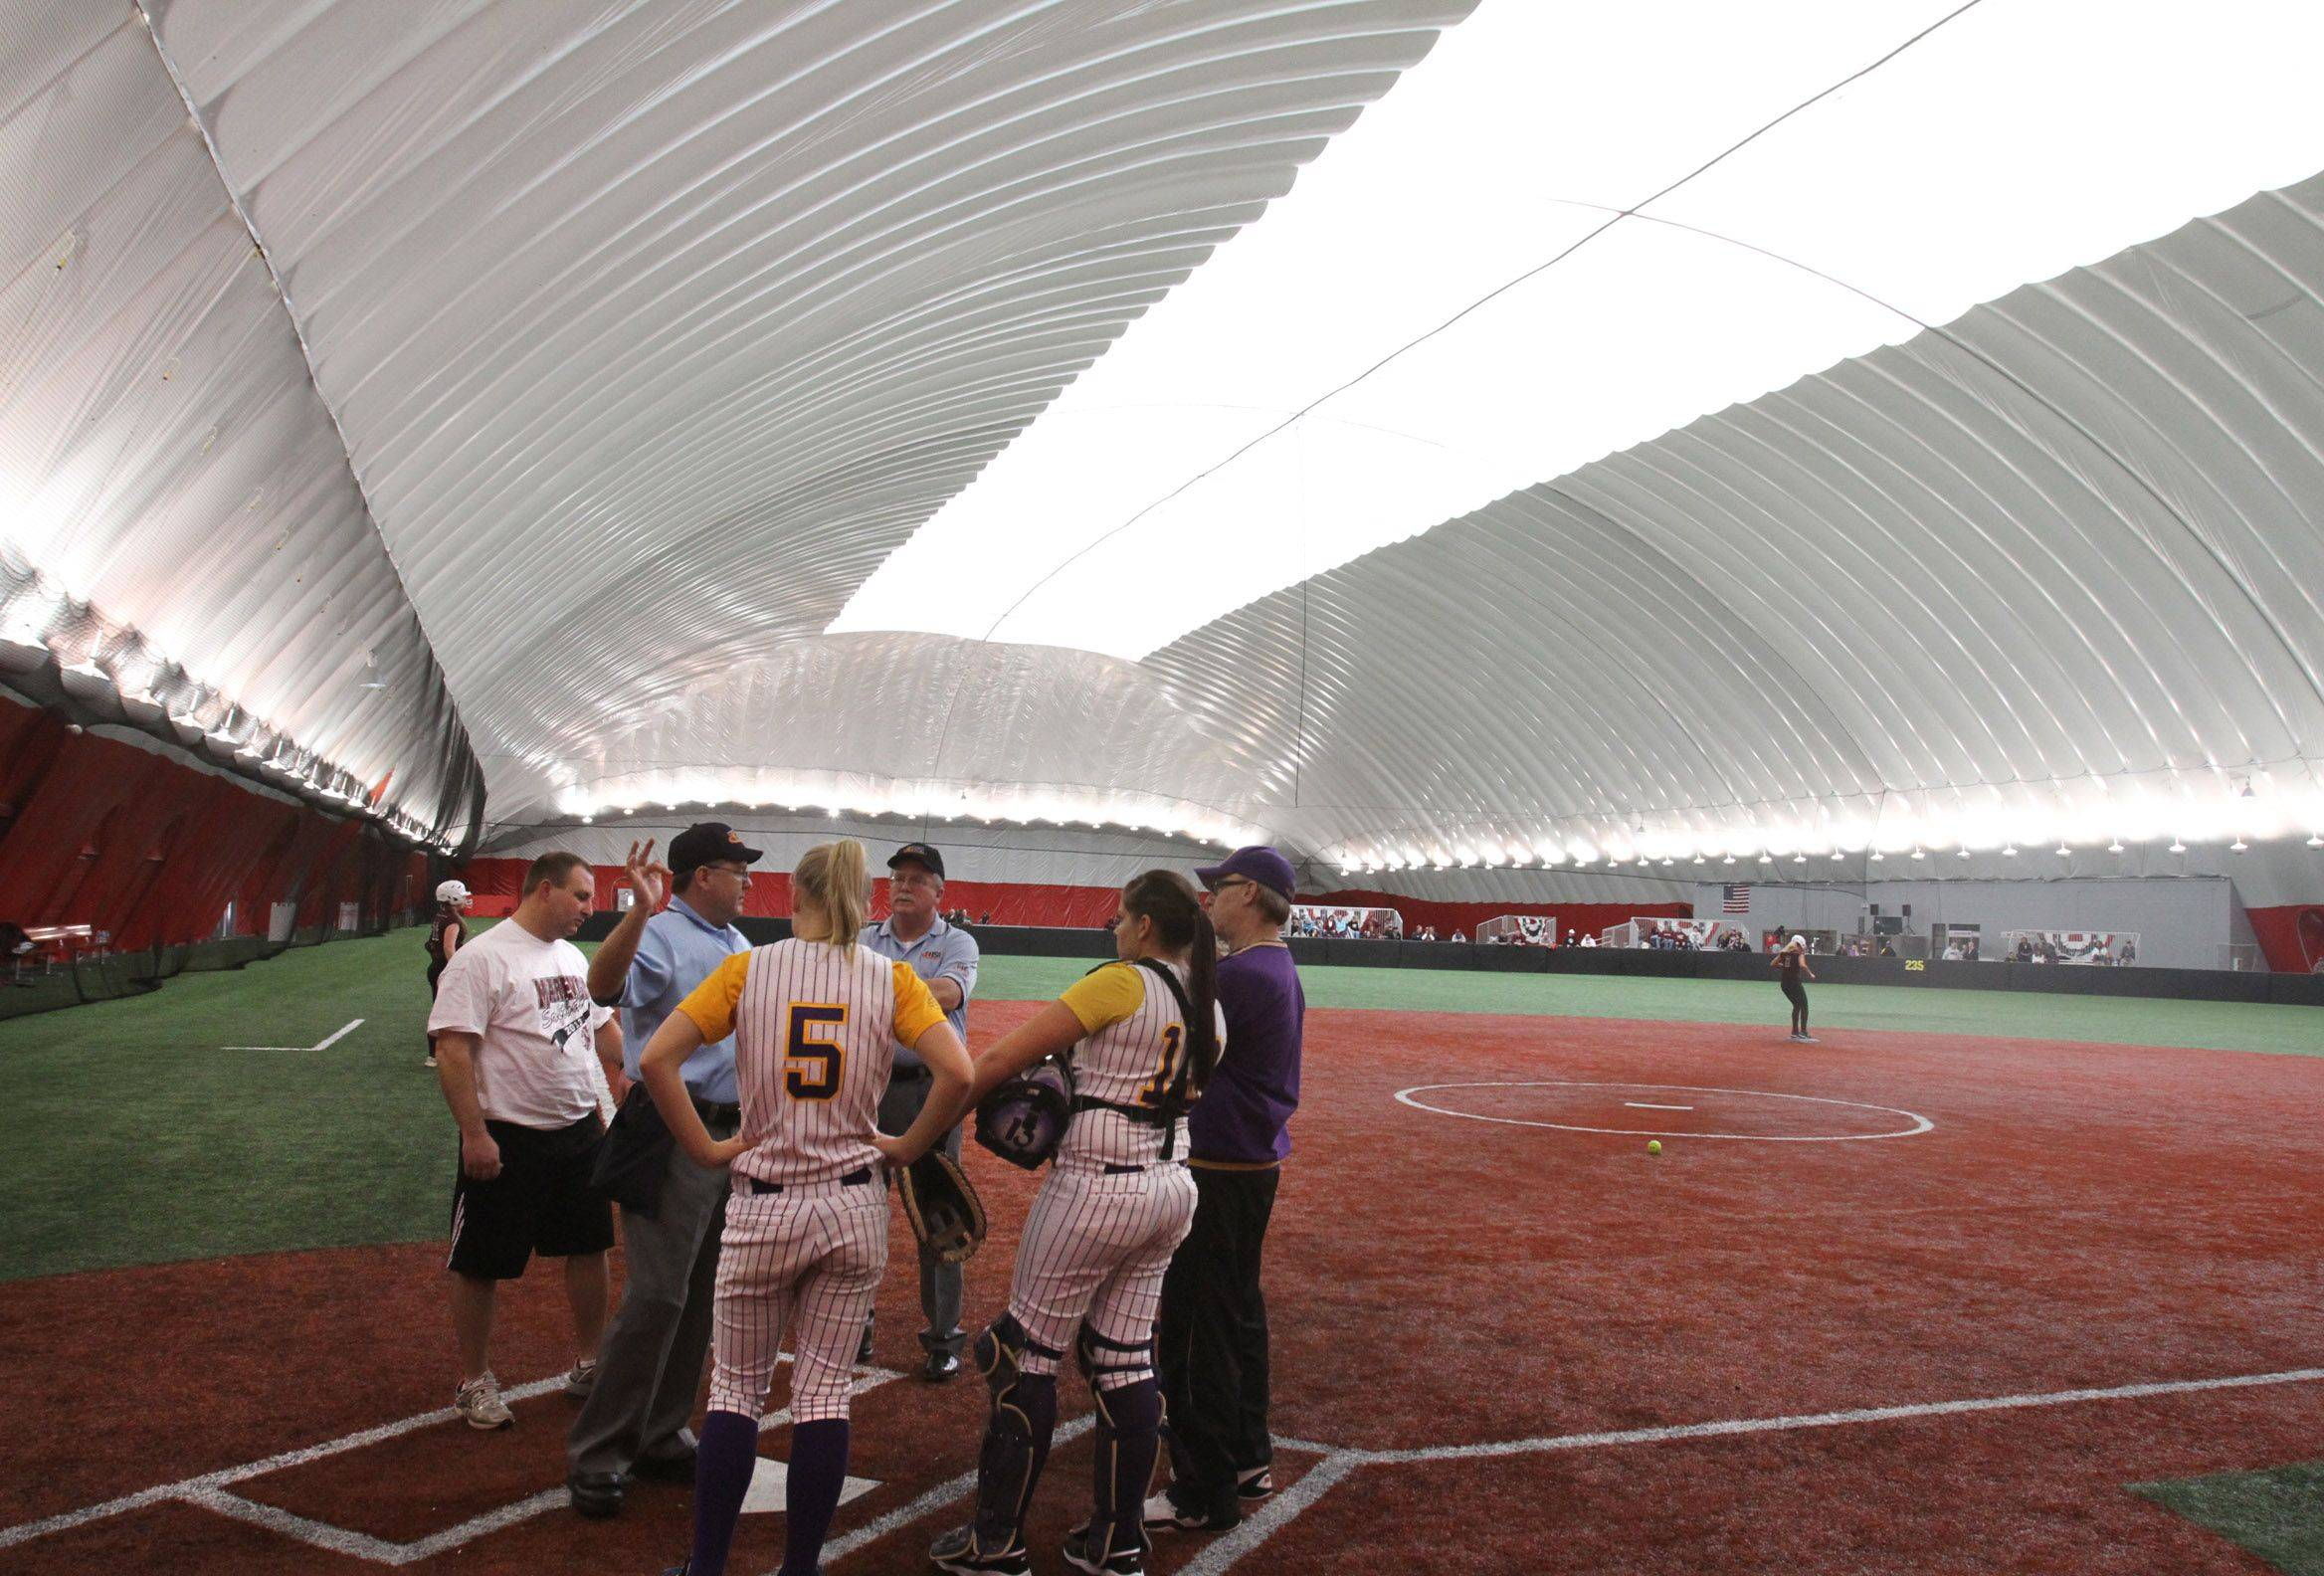 Umpires and coaches discuss the ground rules before the first pitch Friday between Wauconda and Marengo at The Dome in Rosemont.